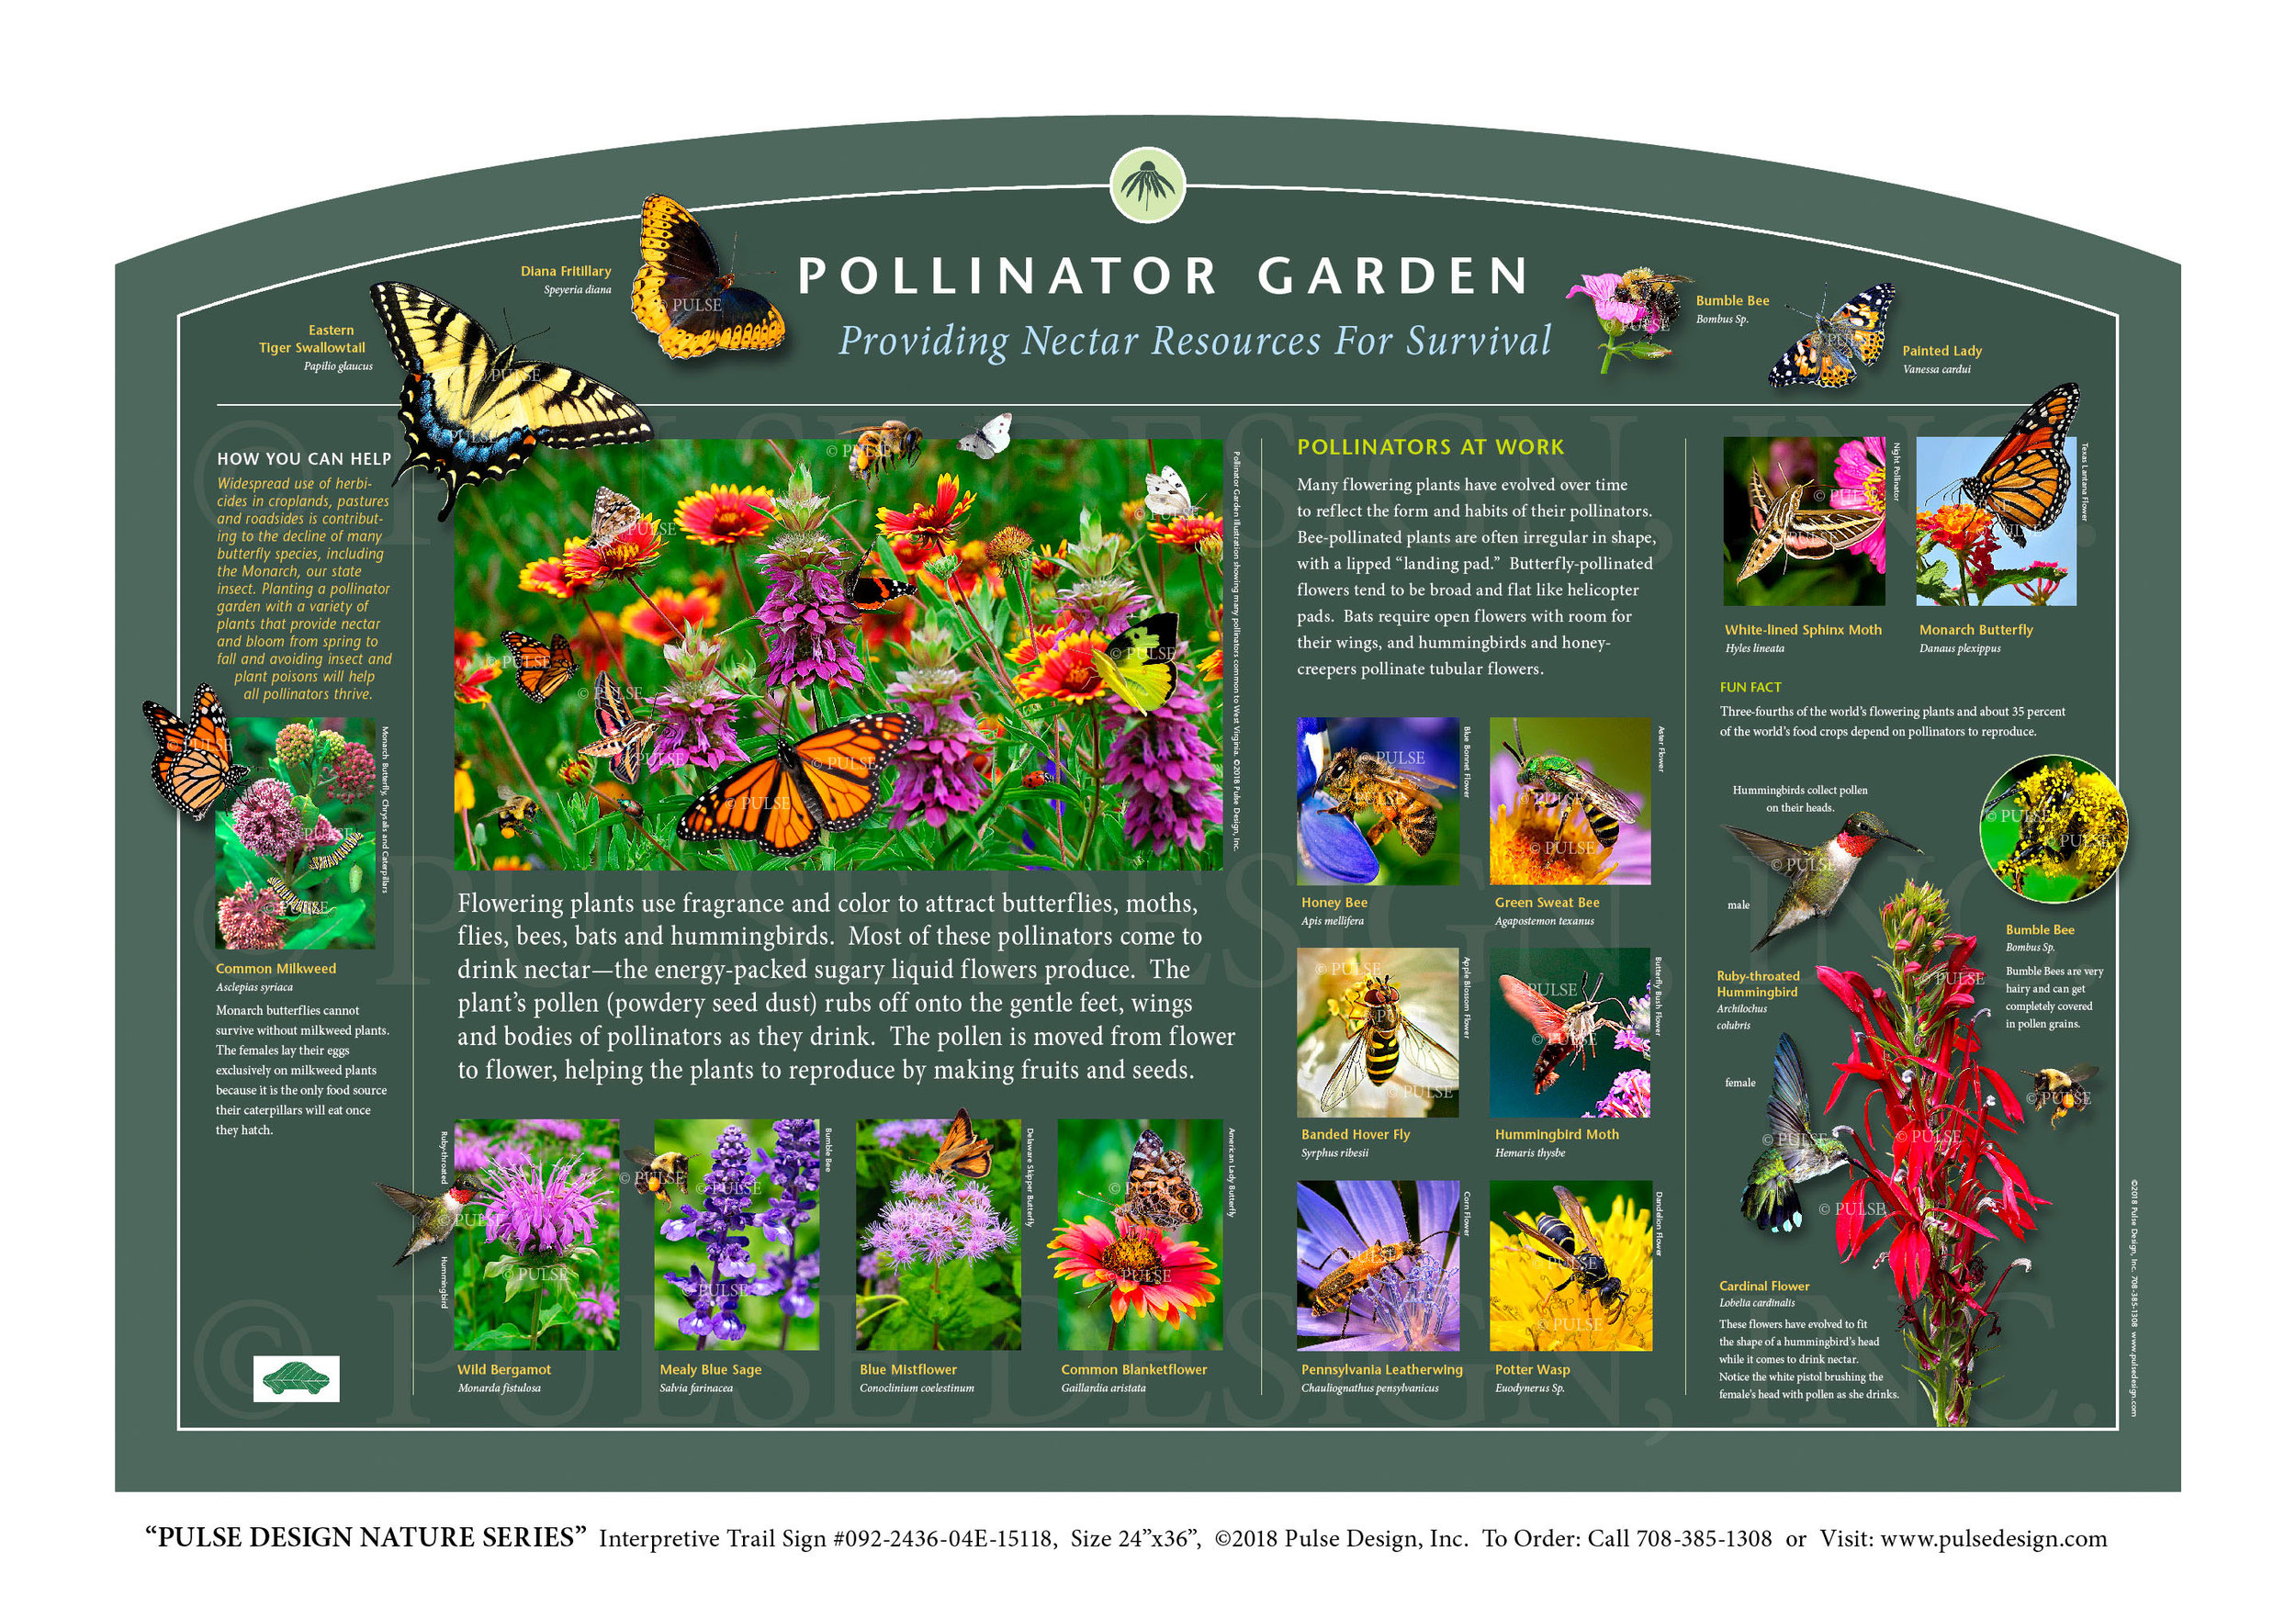 """Pulse Design provides Outdoor Interpretive Nature Trail Signs, Environmental Education Exhibits, Graphic Display Panels,Wayfinding Signage and Monuments, focused on Wildlife and Habitat throughout the United States. The  PULSE DESIGN NATURE SERIES is a beautiful, """"Ready-to-Order"""" and """"Customizable"""" series of interpretive trail signs that cover many common nature subjects. See more signs from our  INSECTS & POLLINATOR SIGNS SERIES ."""